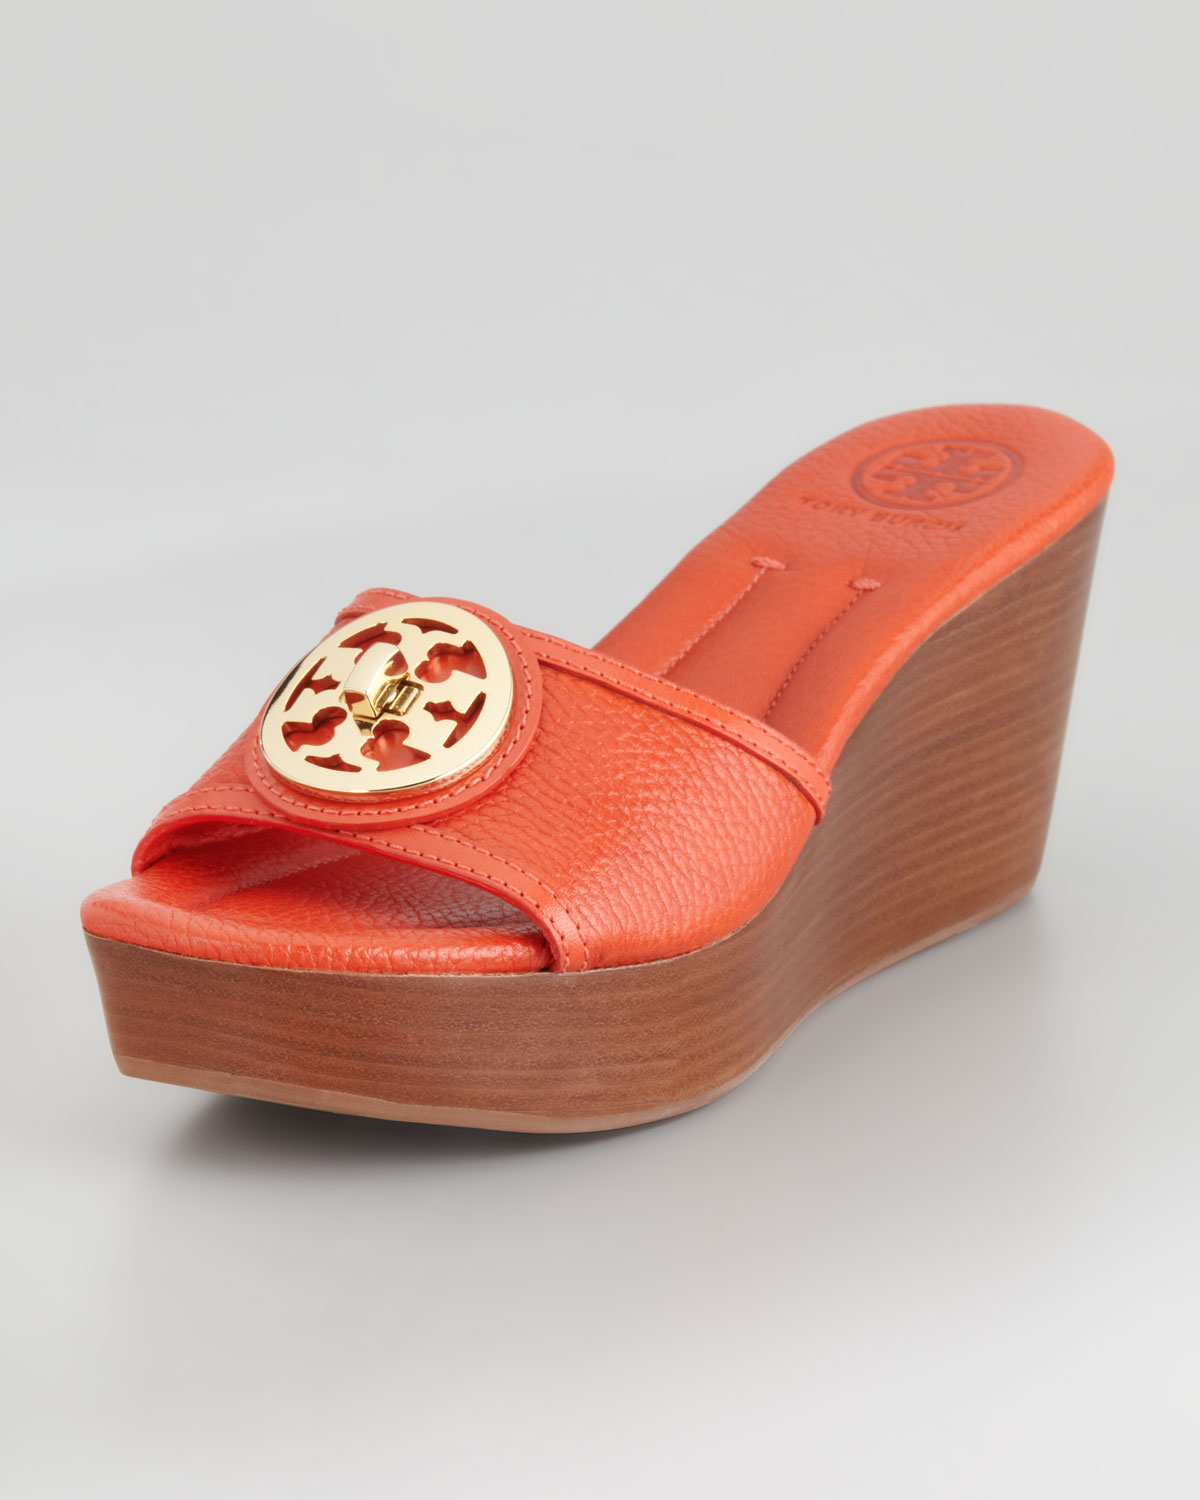 397214b2ad81 Tory Burch Selma Logo Wedge Slides in Red - Lyst